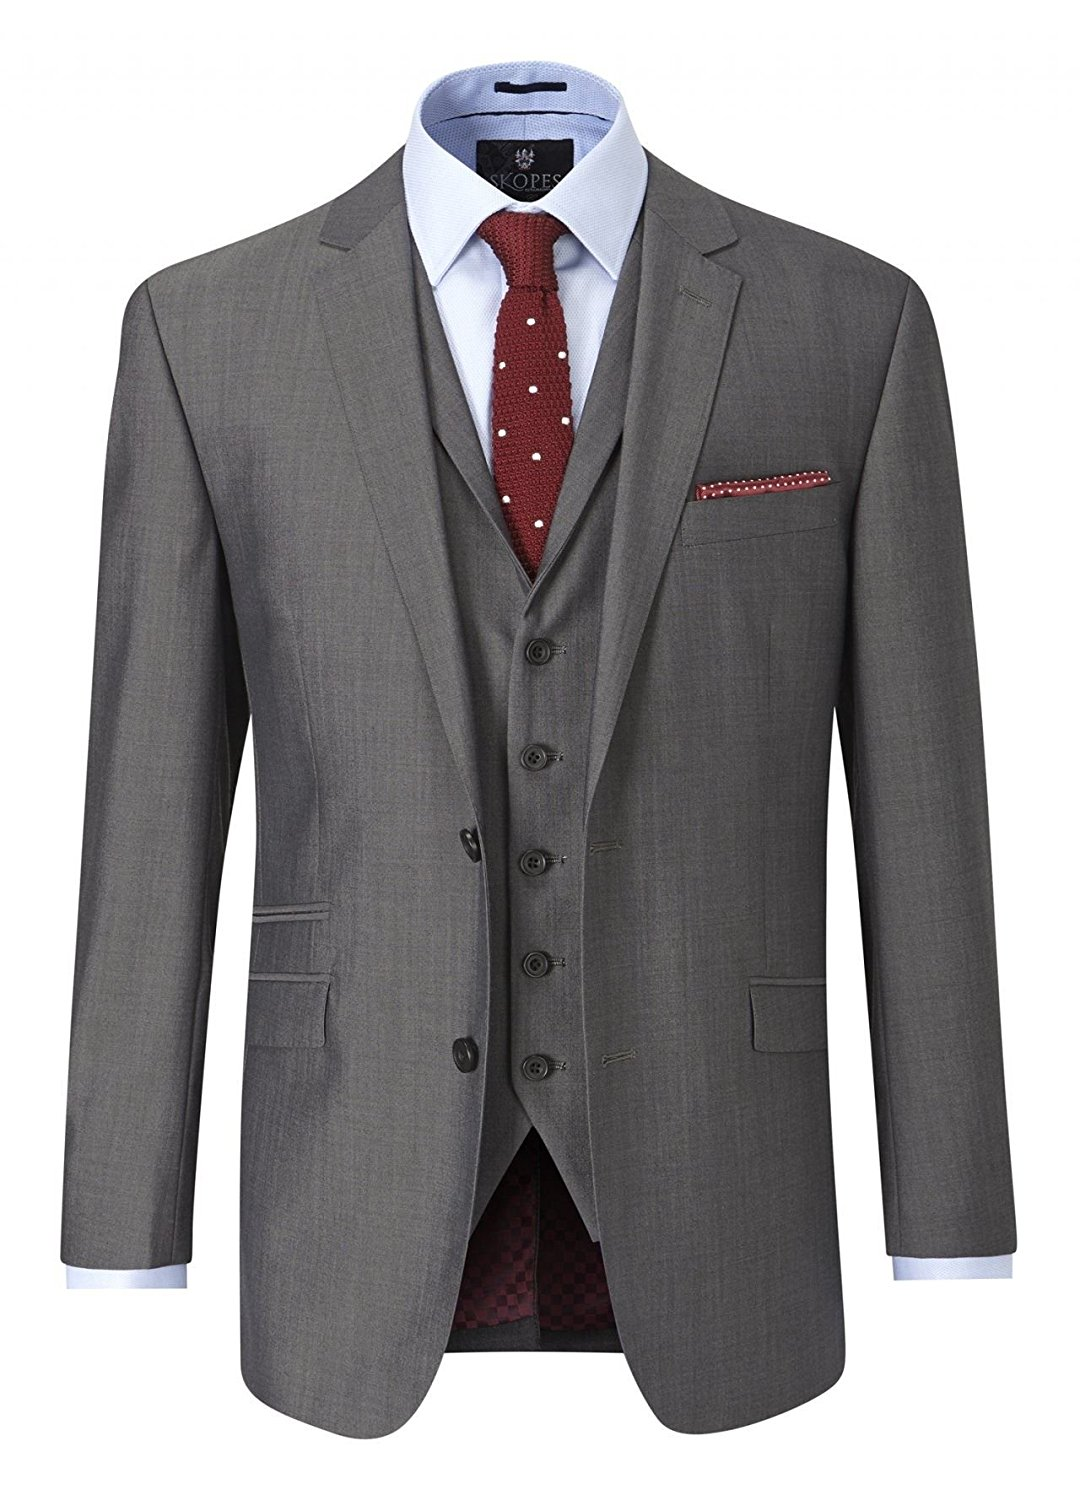 SKOPES Wool Blend Tailored Fit Suit Jacket (Egan) in Charcoal Size 48 To 62, S/R/L